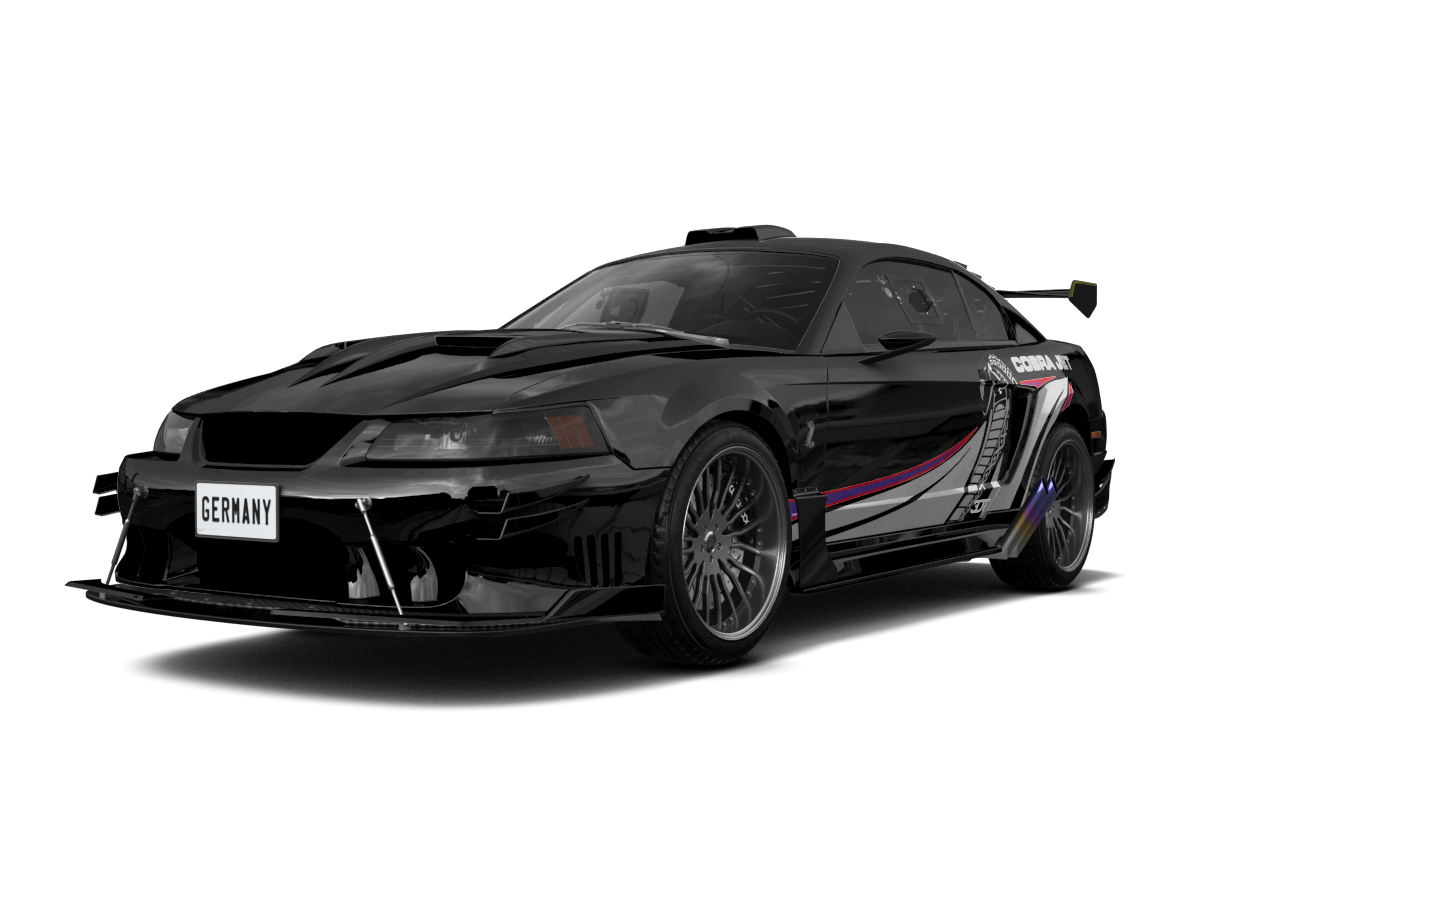 Ford Mustang SVT Cobra R 2 Door Coupe 2000 tuning